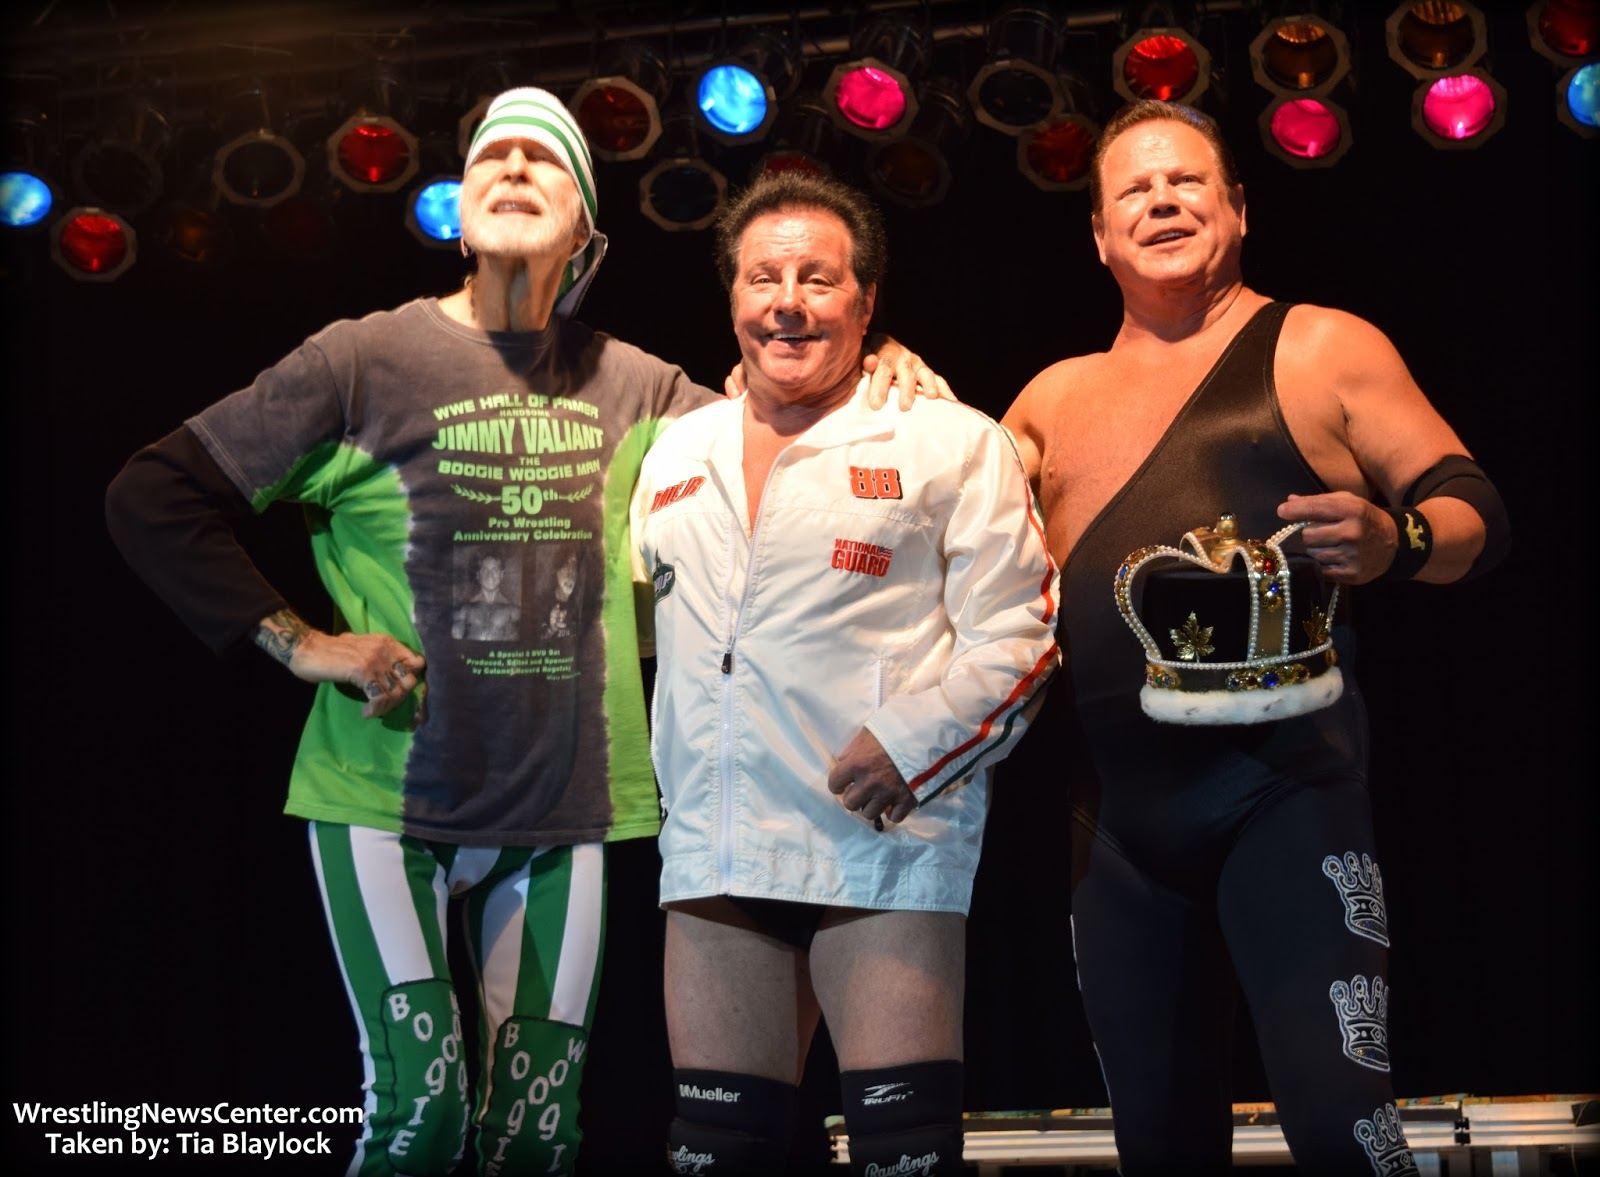 Wrestling News Center: More pictures from the SOLD OUT show at the ...